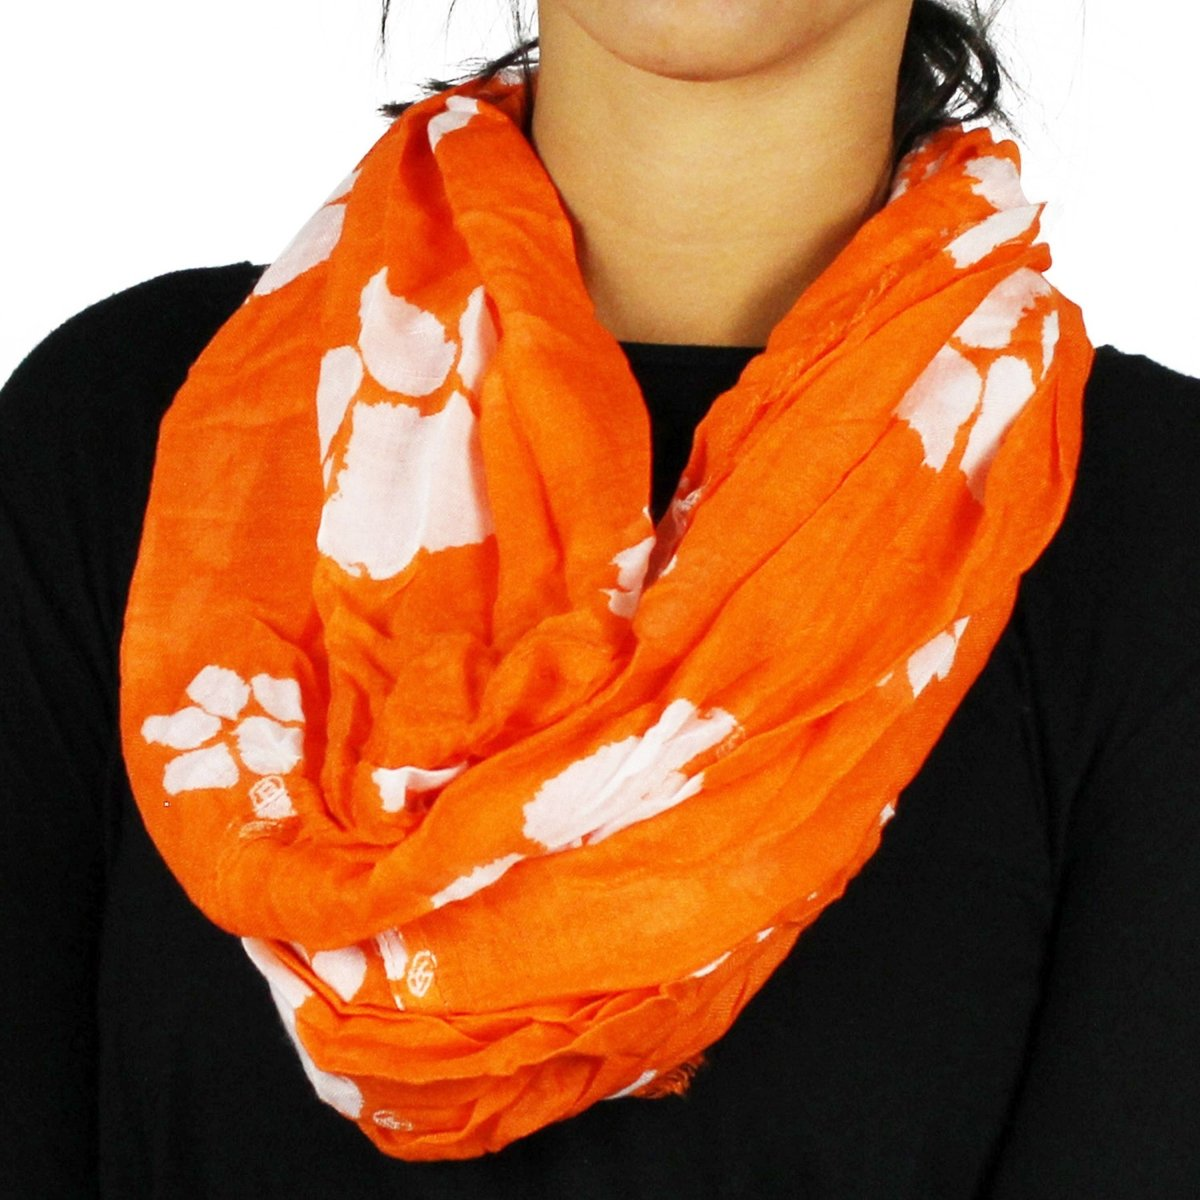 Orange Infinity Scarf with White Paws - Mr. Knickerbocker